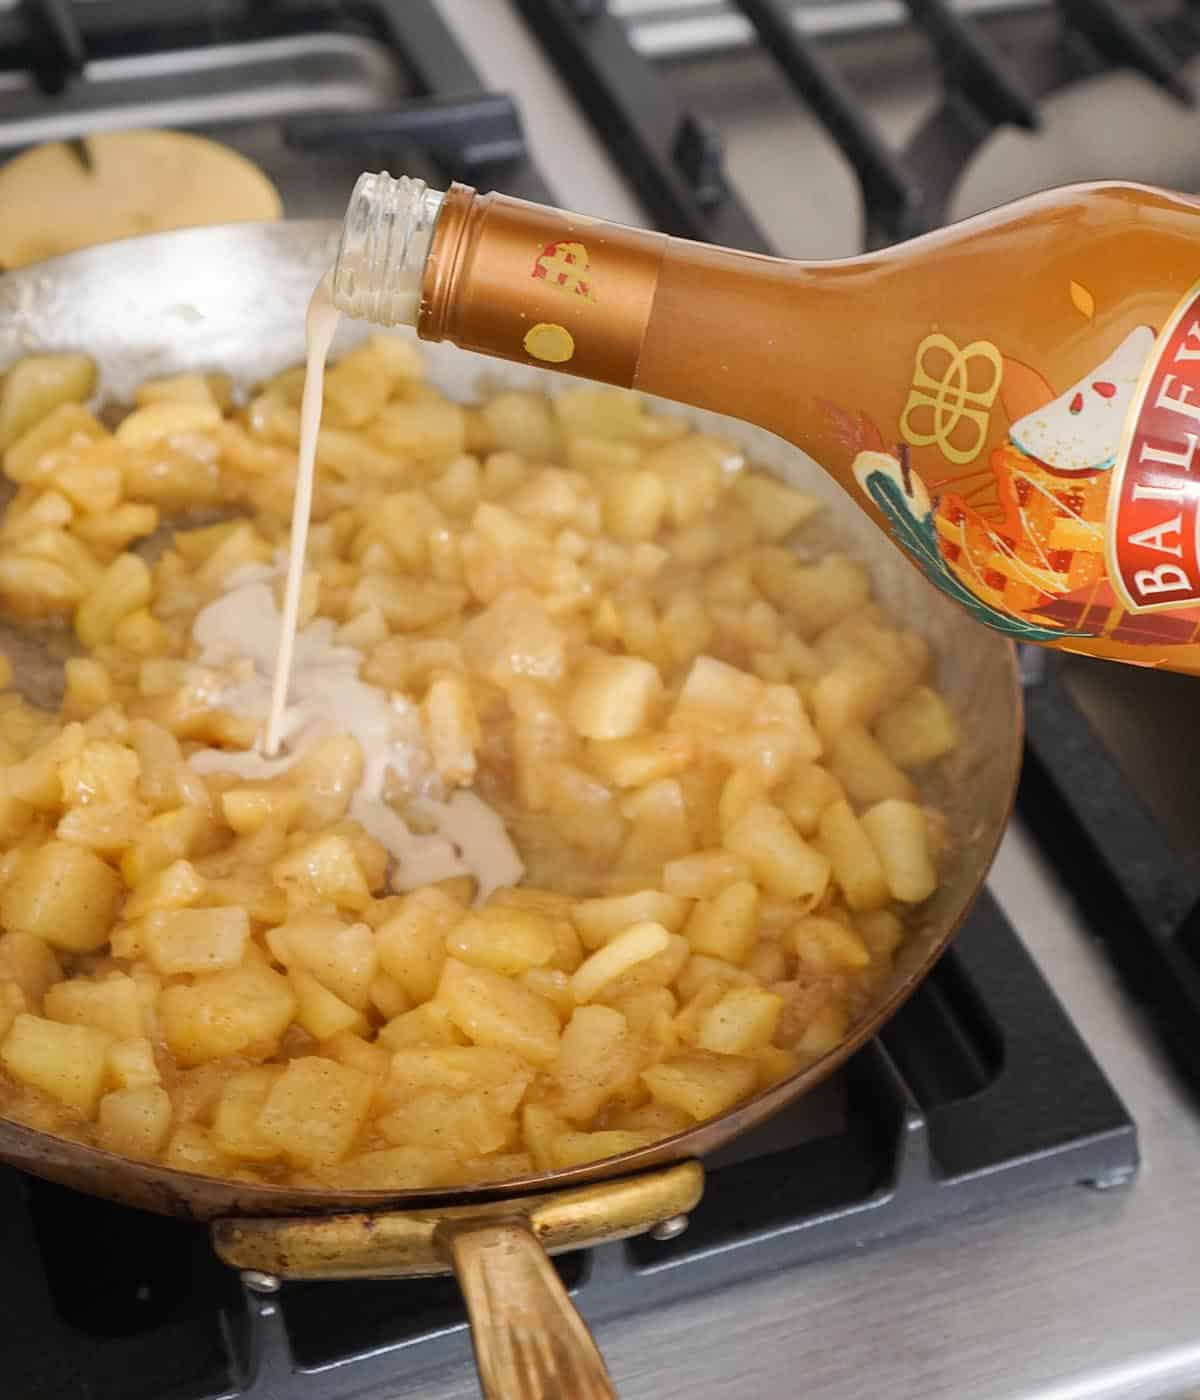 Baileys getting poured into apple pie filling.